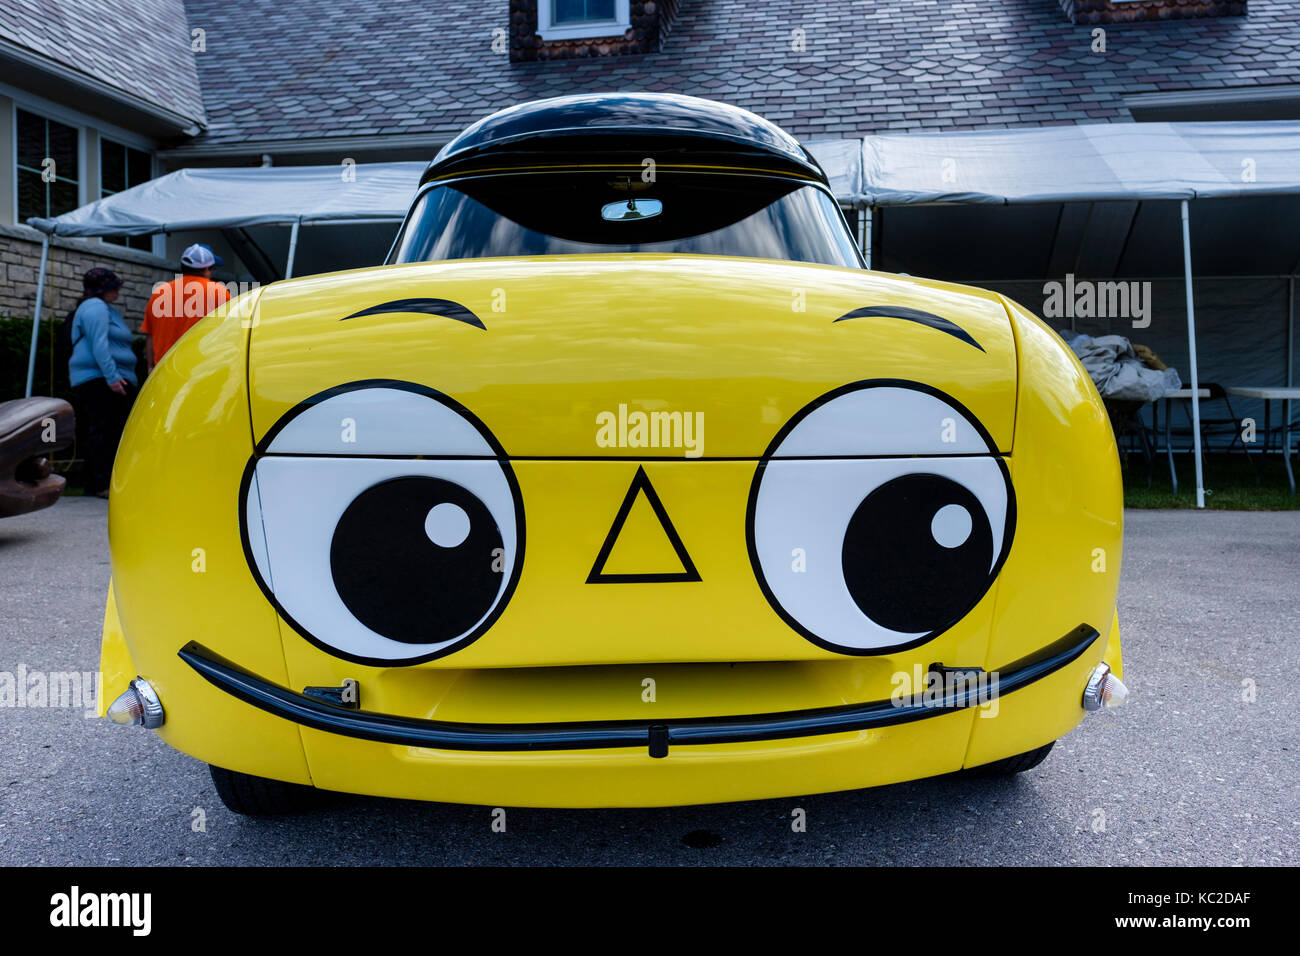 Mr. Beep The Talking Car, customized car used by BP Oil Company of Canada for a schoolchildren road safety program - Stock Image